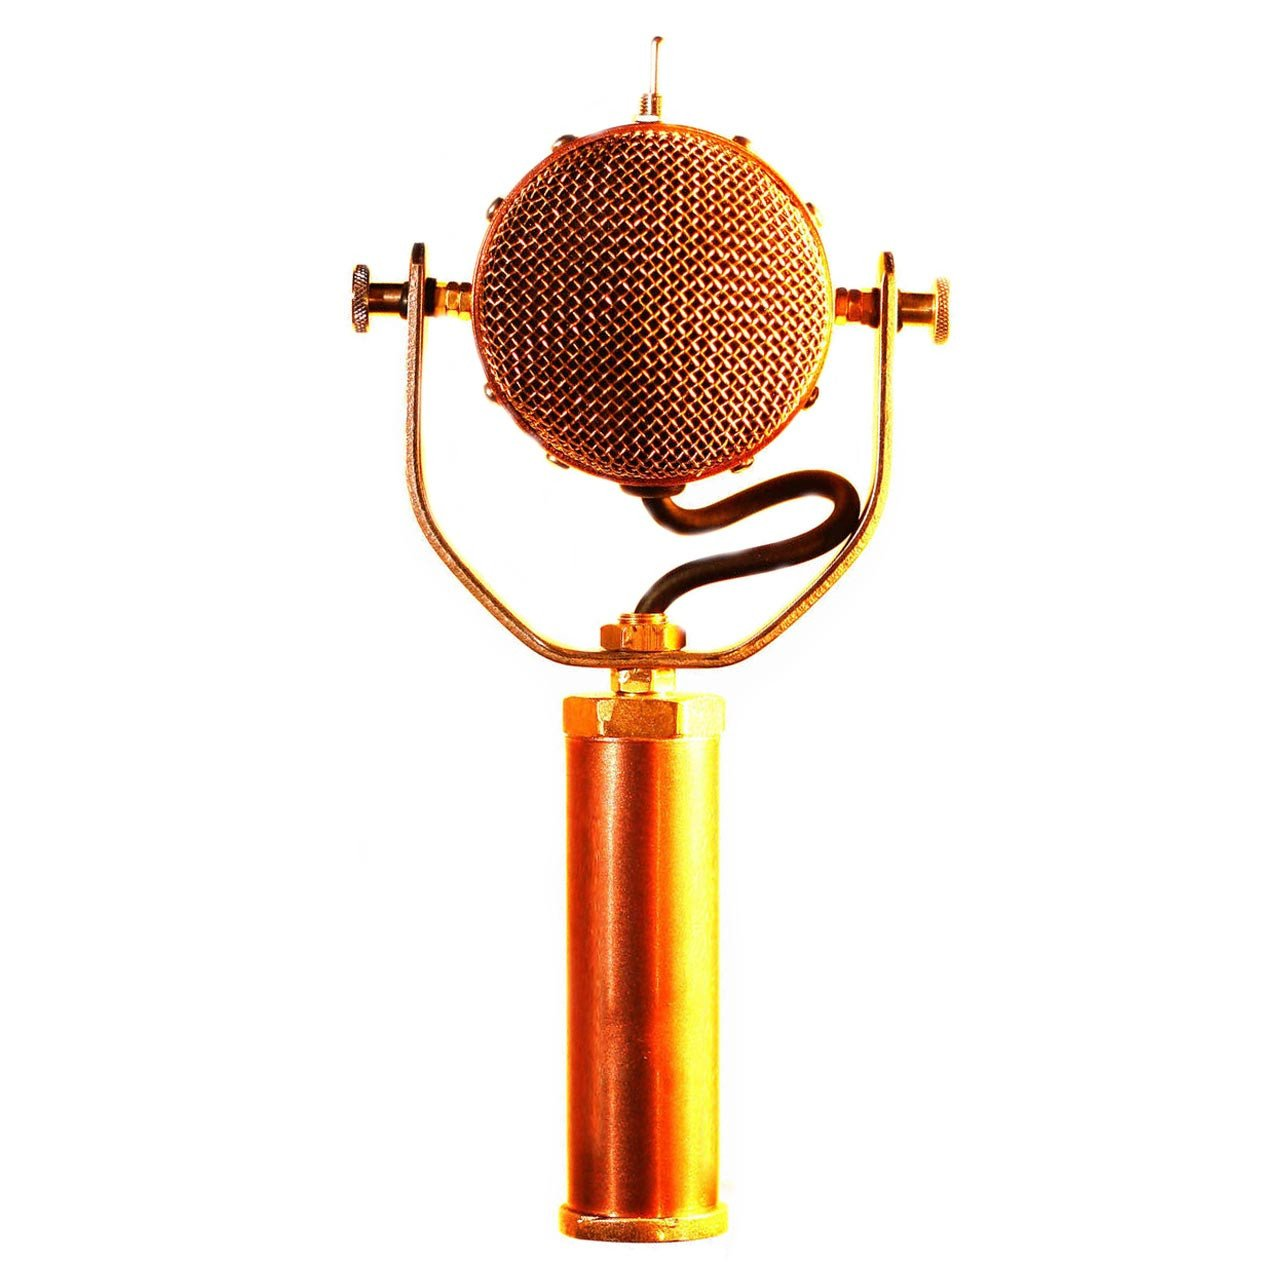 Condenser Microphones - Ear Trumpet Labs Mabel Condenser Microphone